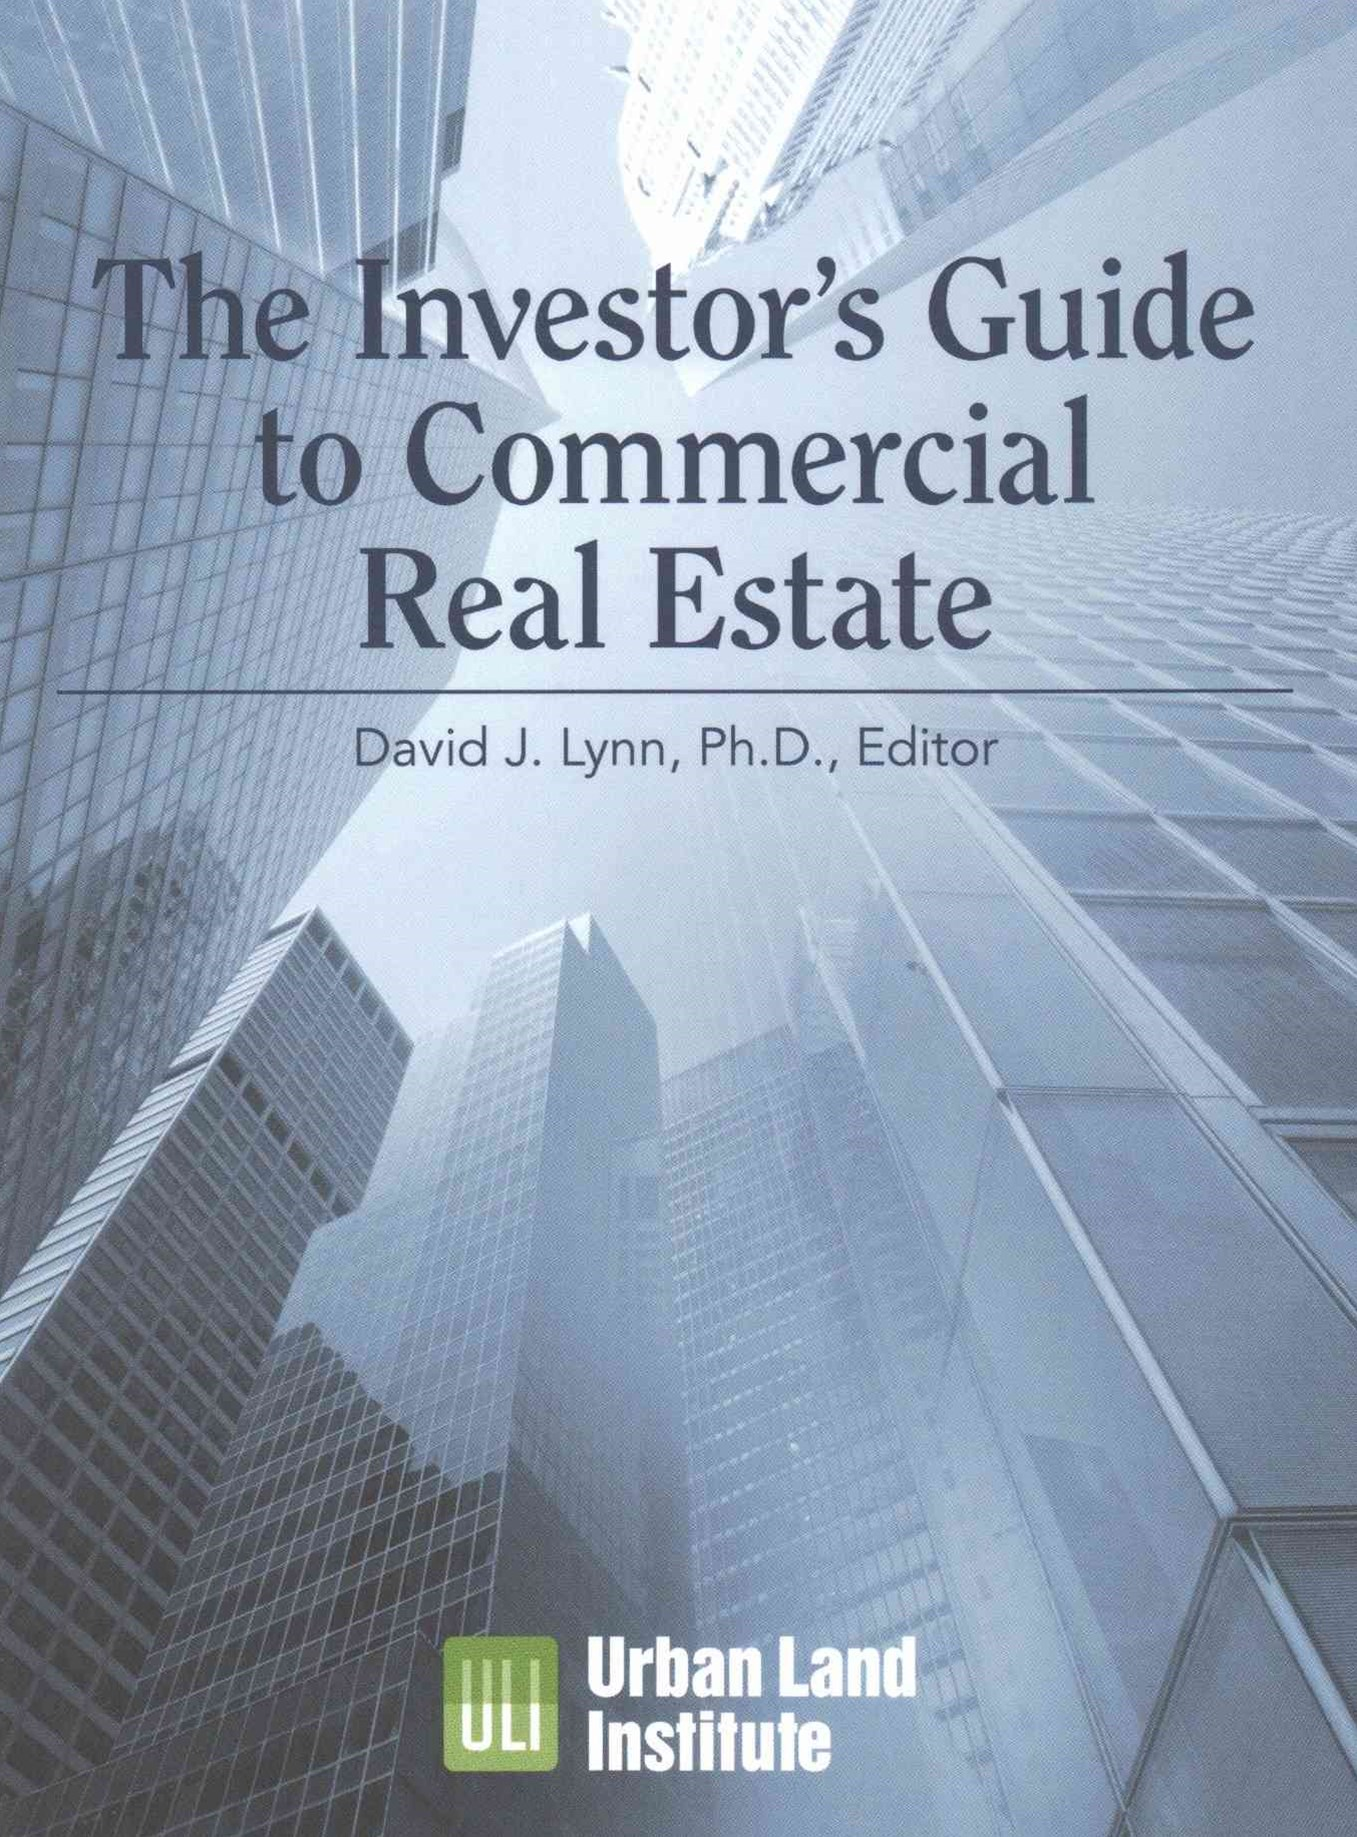 The Investor's Guide to Commercial Real Estate